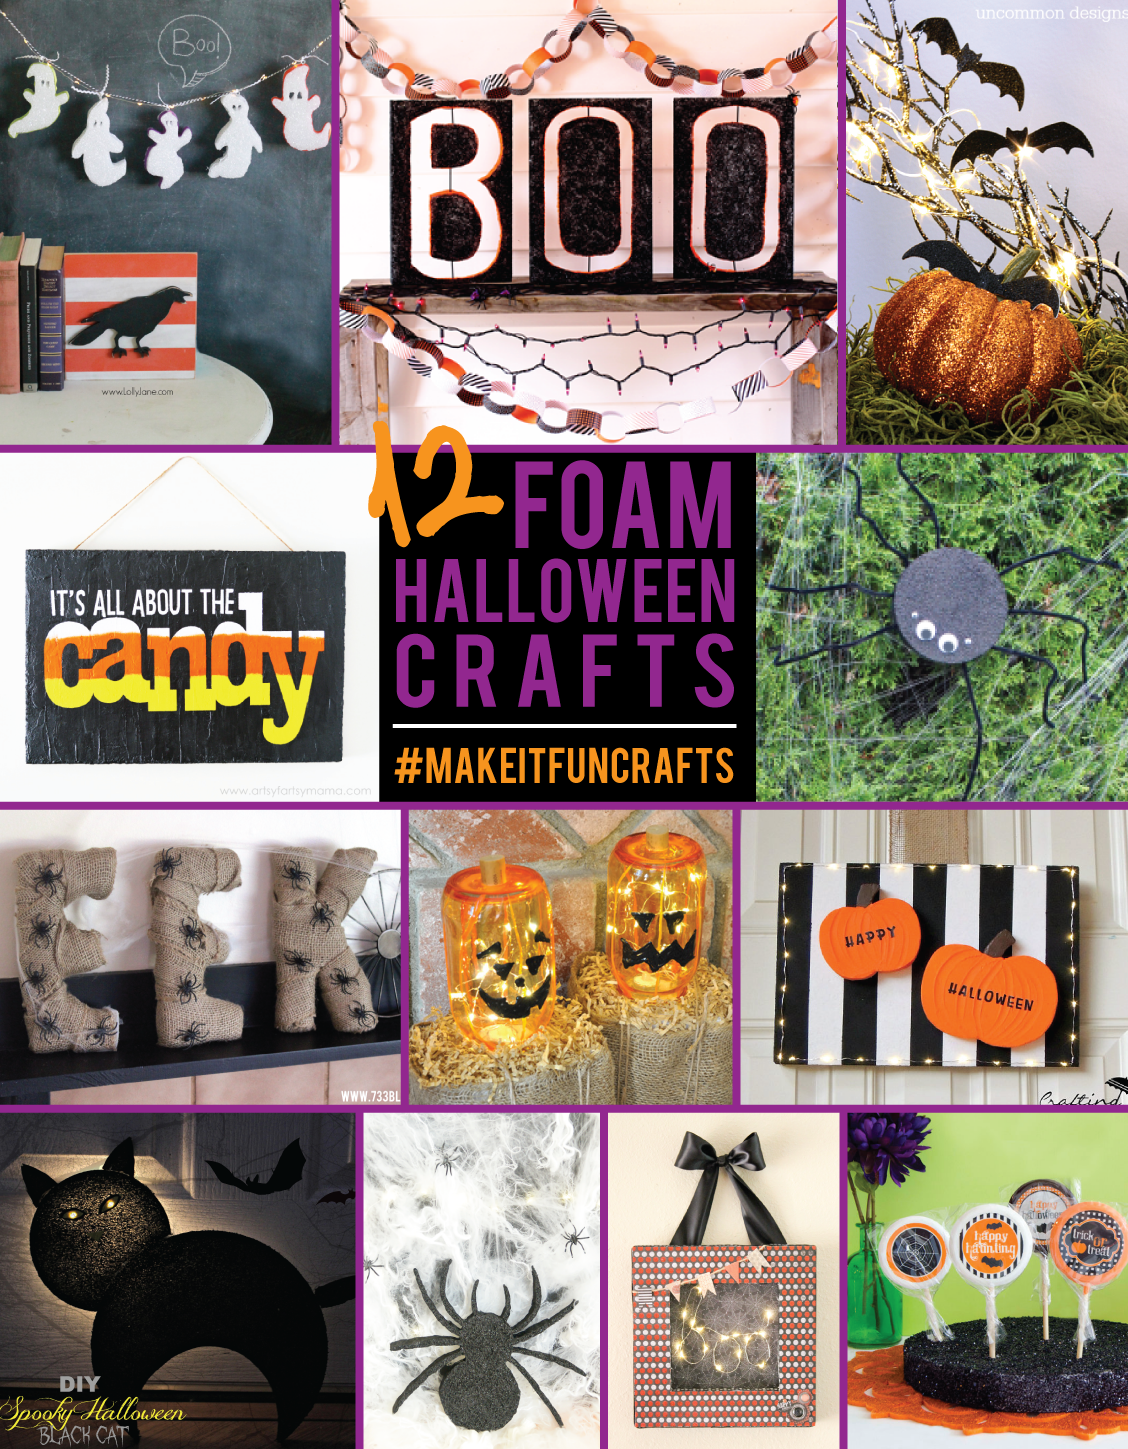 12 Fun Foam Halloween Crafts #makeitfuncrafts